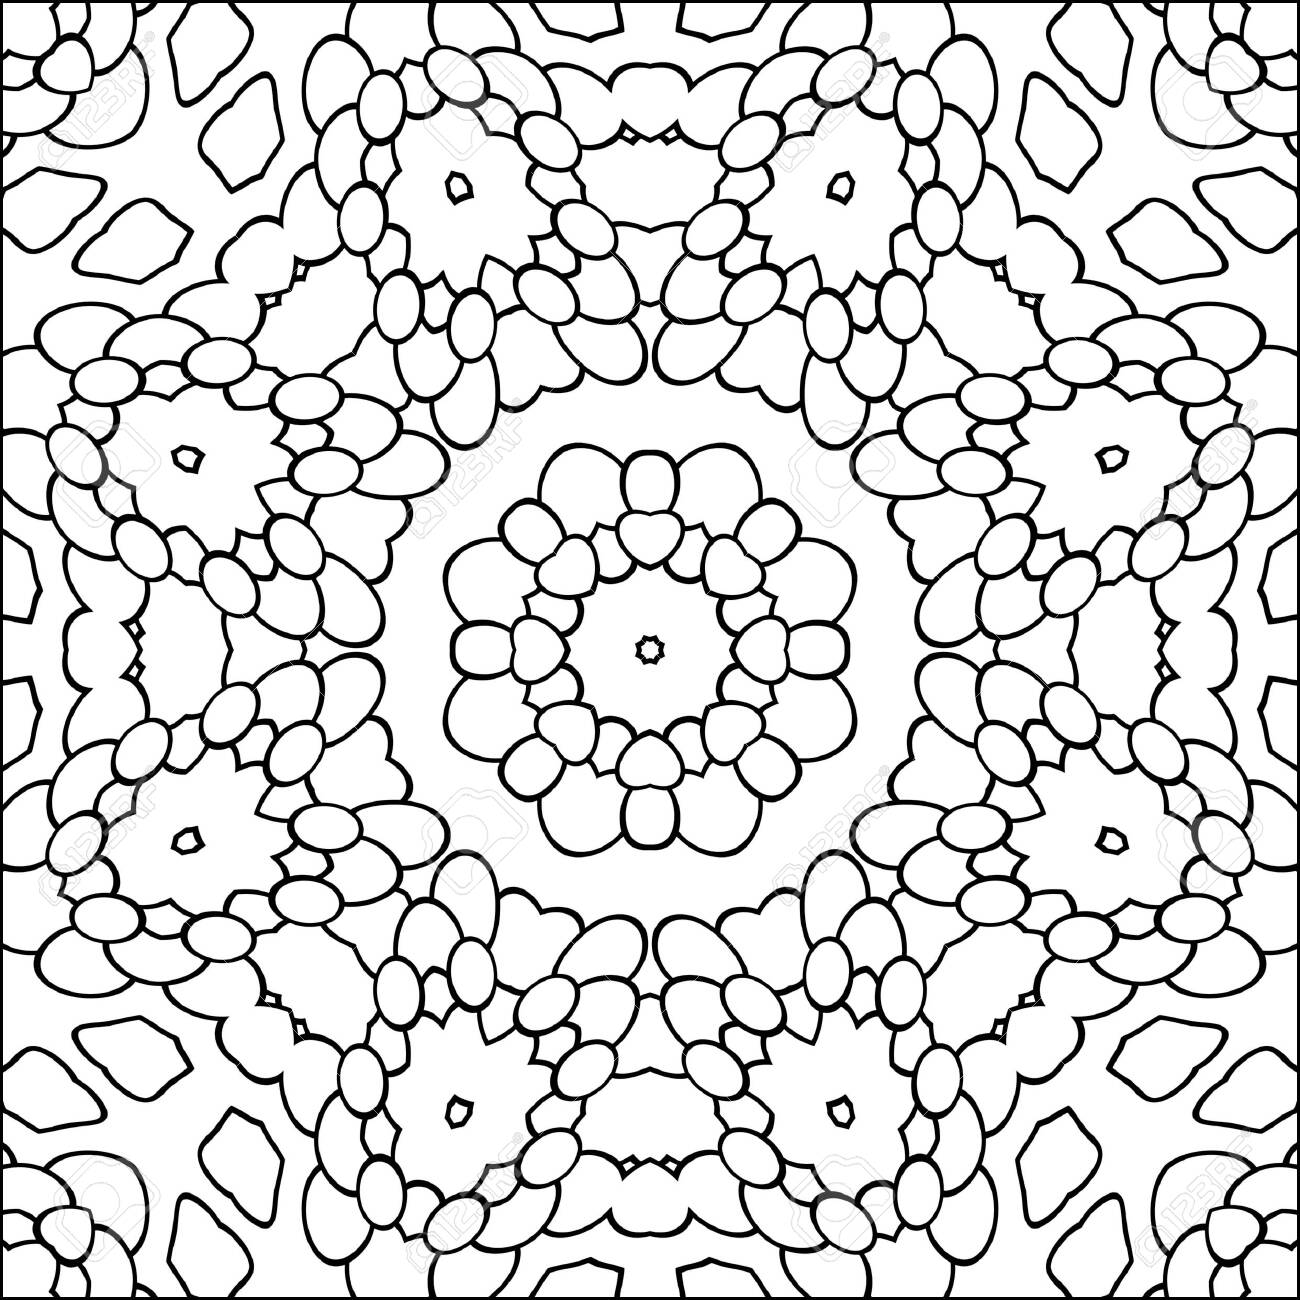 Simple Geometric Coloring Page For Kids And Adults Relax Black Stock Photo Picture And Royalty Free Image Image 145747167